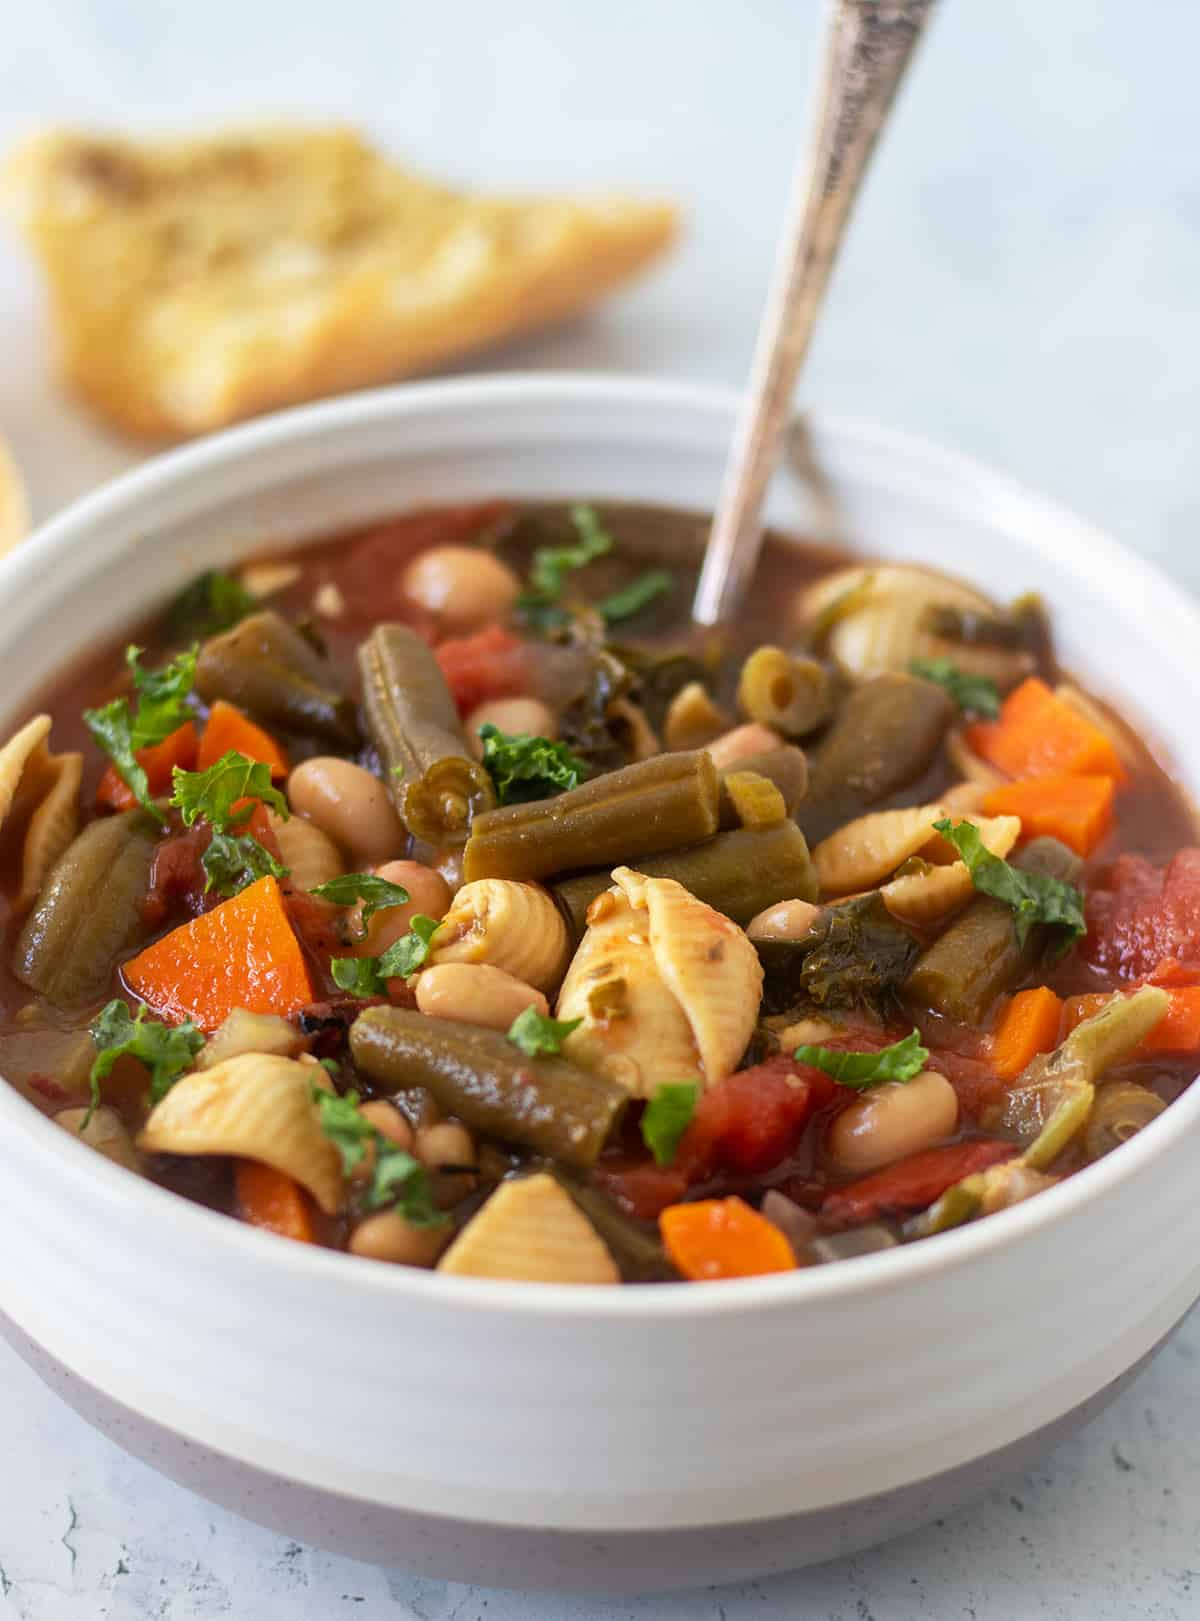 vegetarian minestrone soup in a white and grey bowl with a silver spoon. A slice of garlic bread in the background.